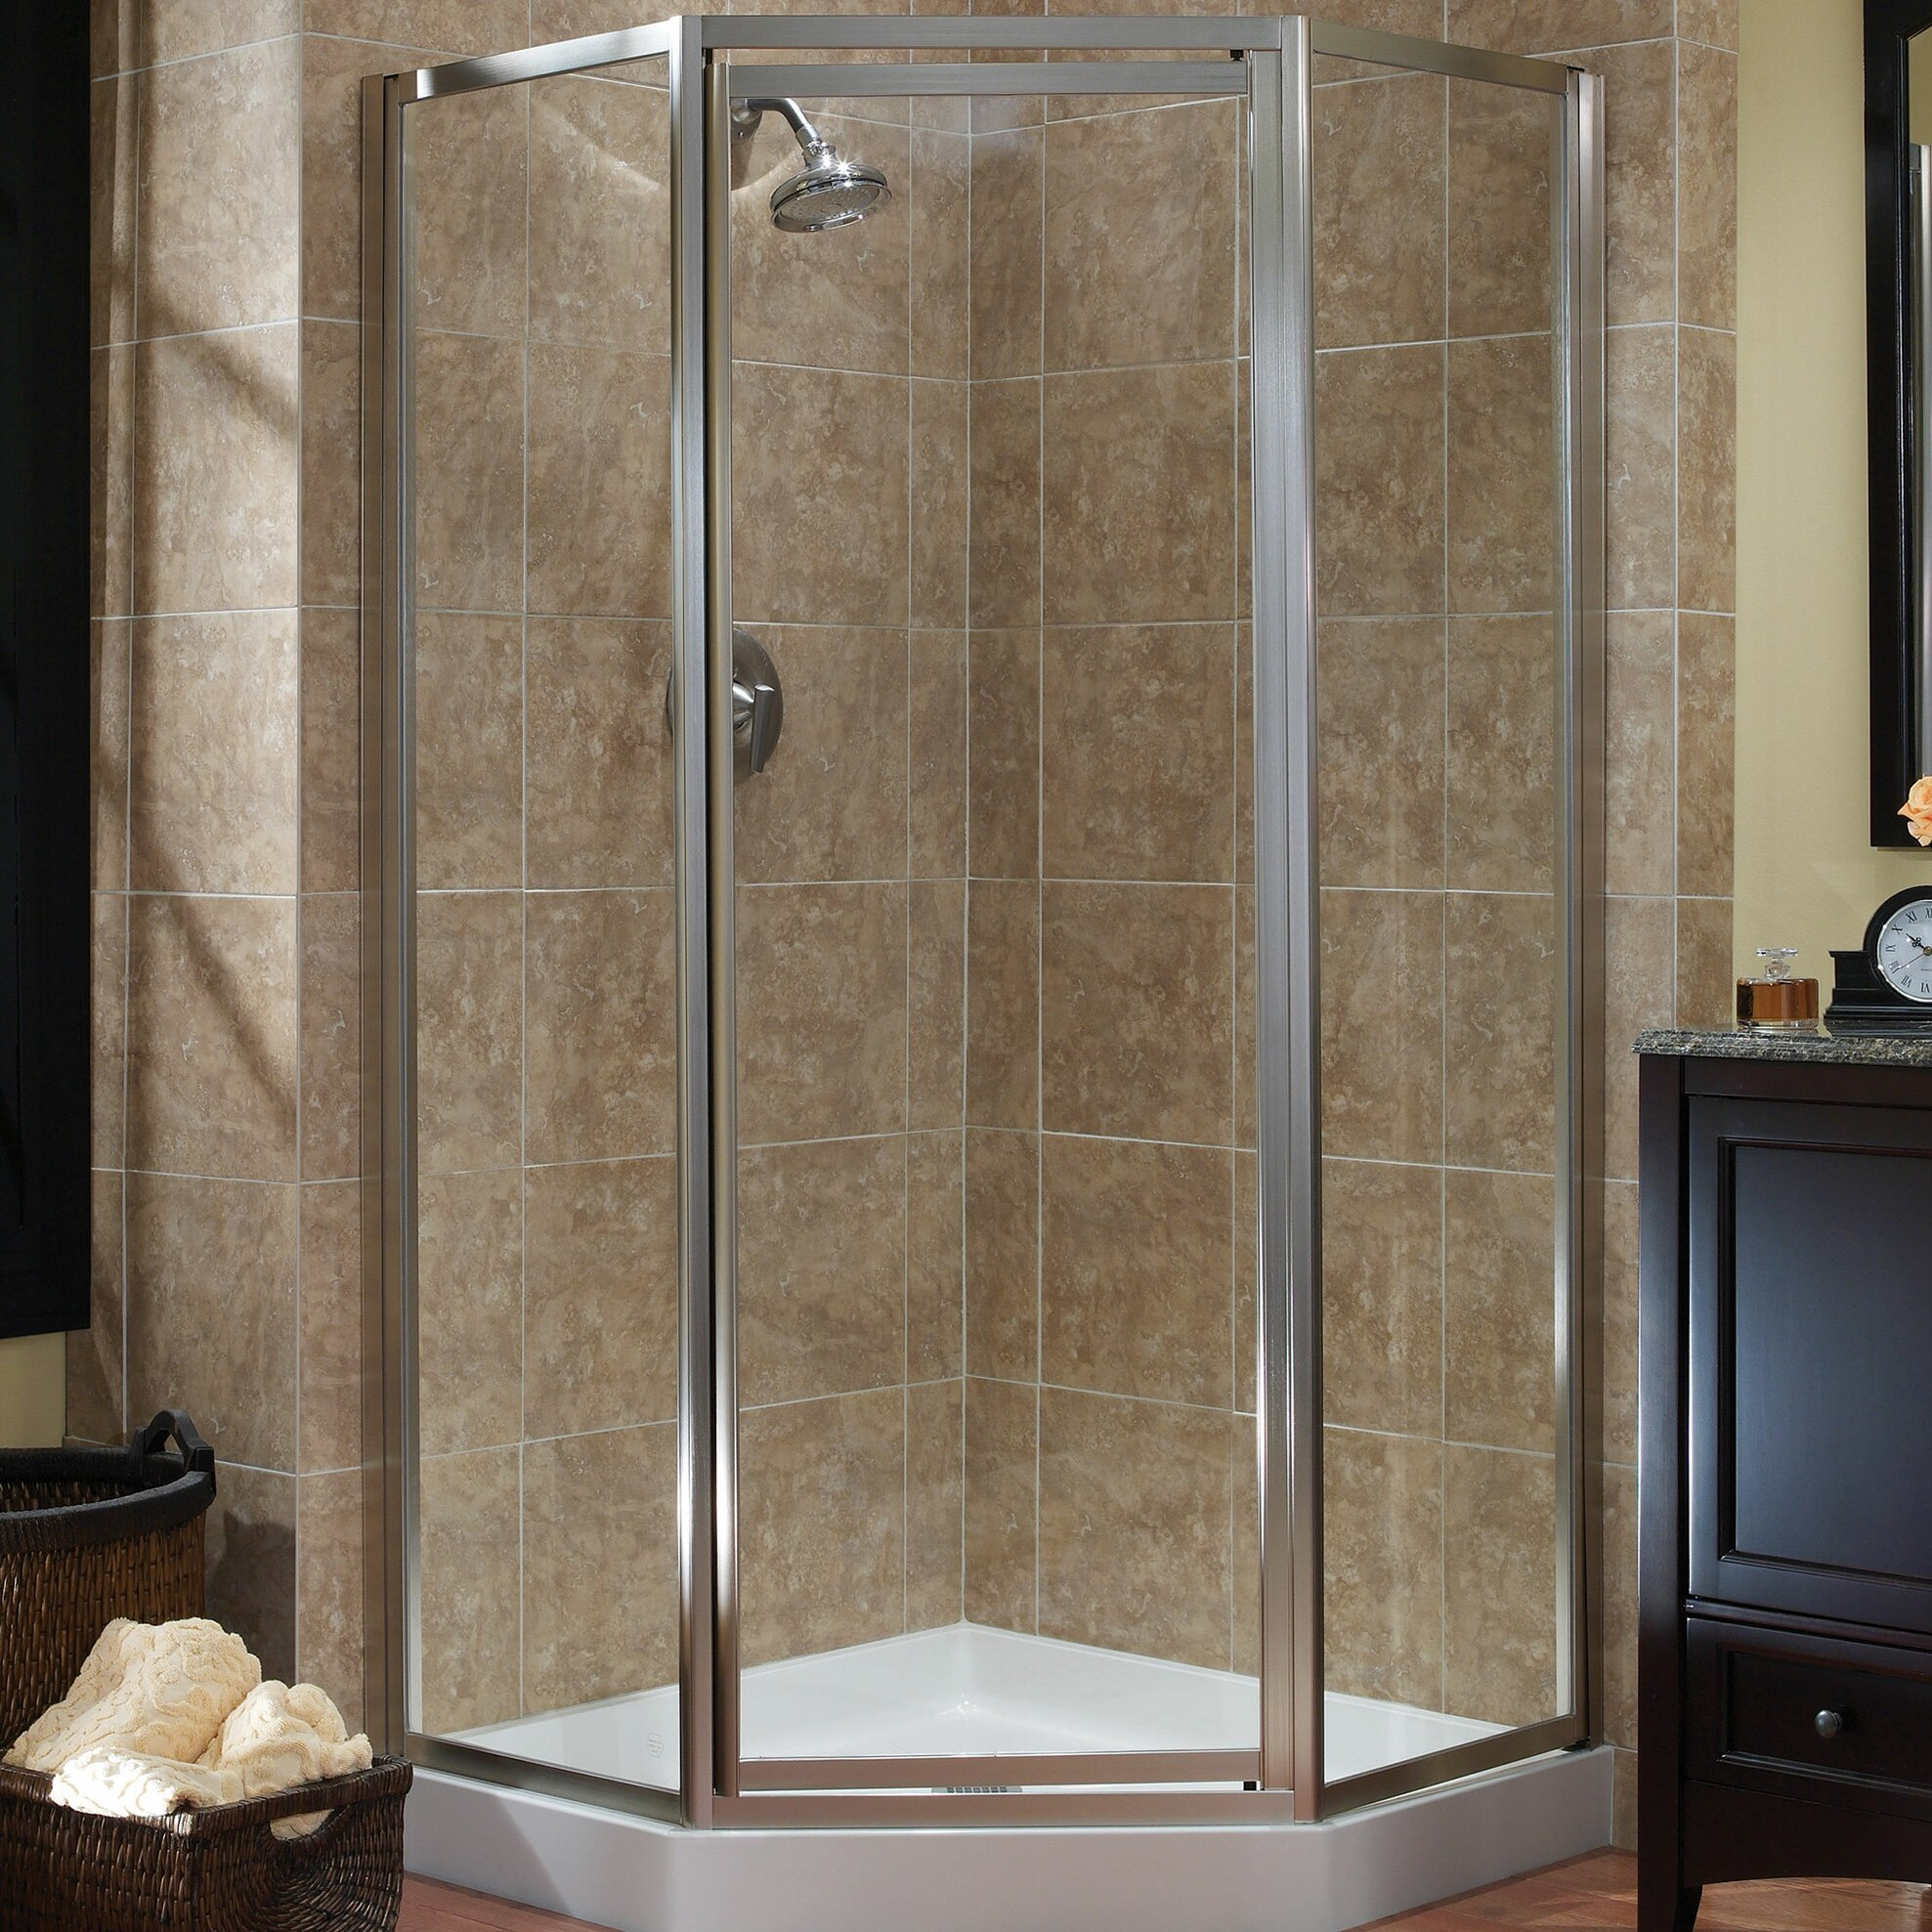 Hazelwood Home Chase 24 Quot X 70 Quot Neo Angle Framed Shower